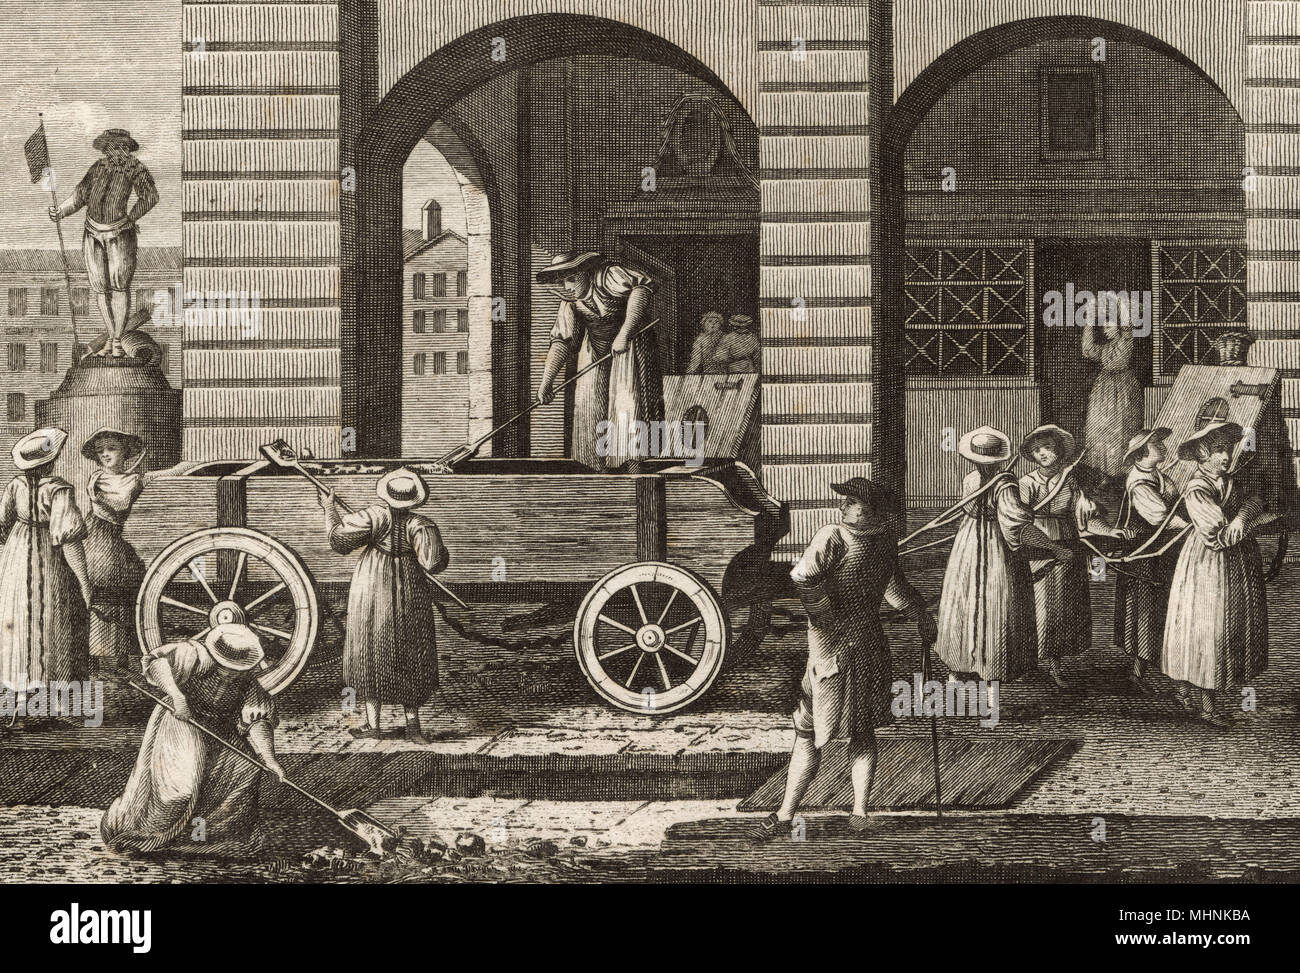 Prostitutes punished in Switzerland by dragging the Scavenger's Cart and loading it up with filth from the streets.     Date: 18th century - Stock Image